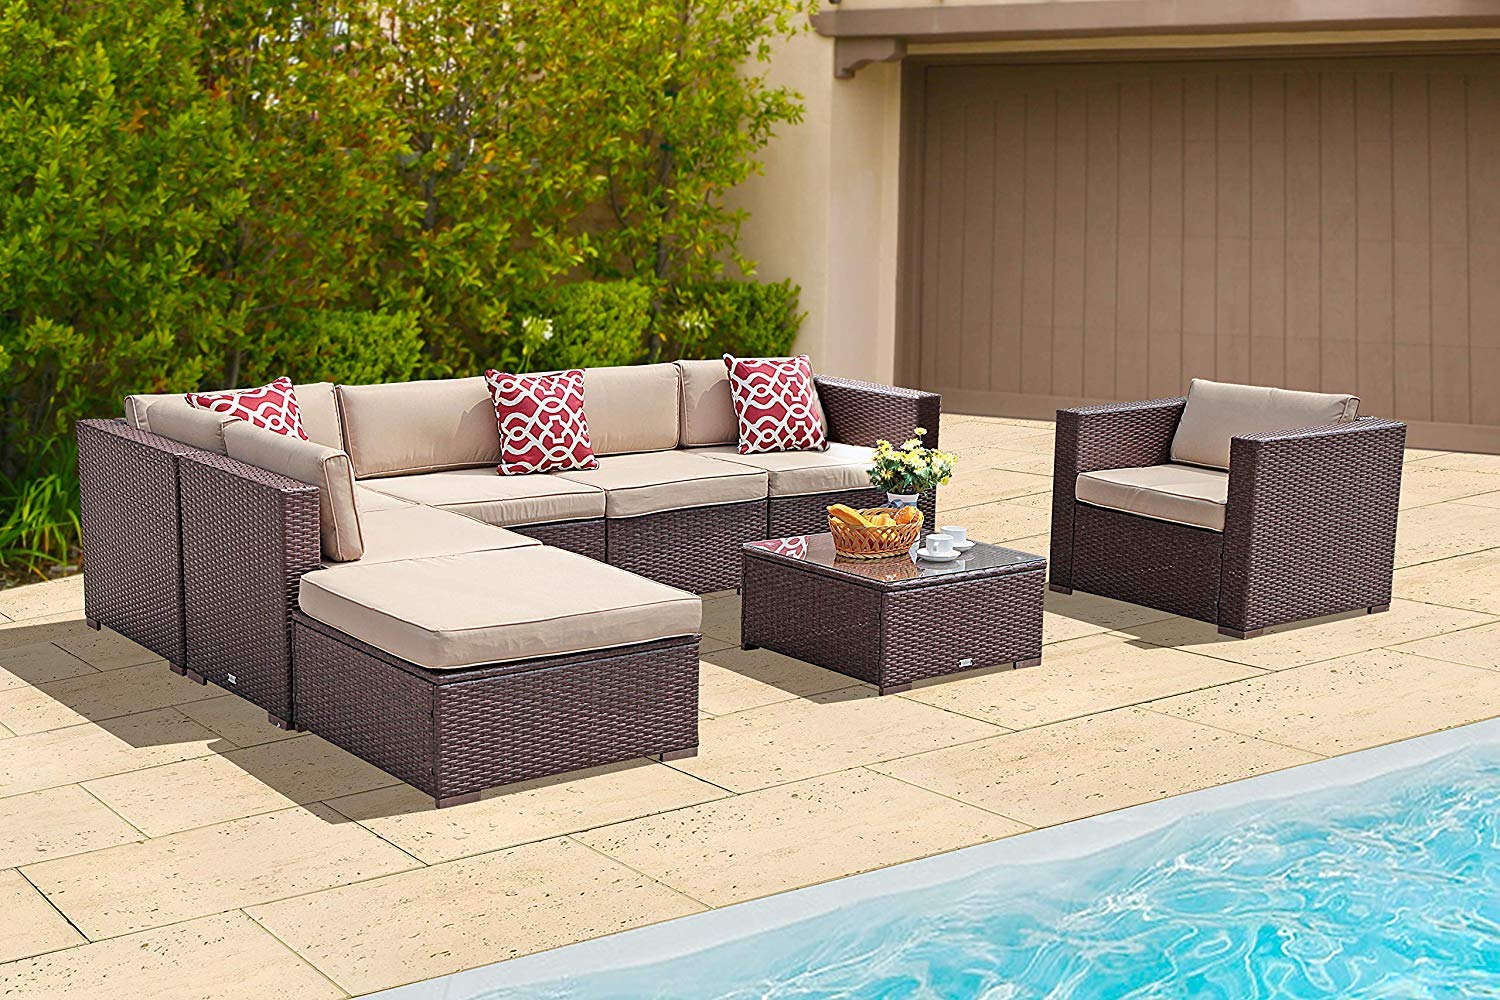 Super Patio 8 Piece Outdoor Furniture Sets, Outdoor Rattan Sectional  Furniture Set Beige Cushions, Espresso Brown PE Wicker